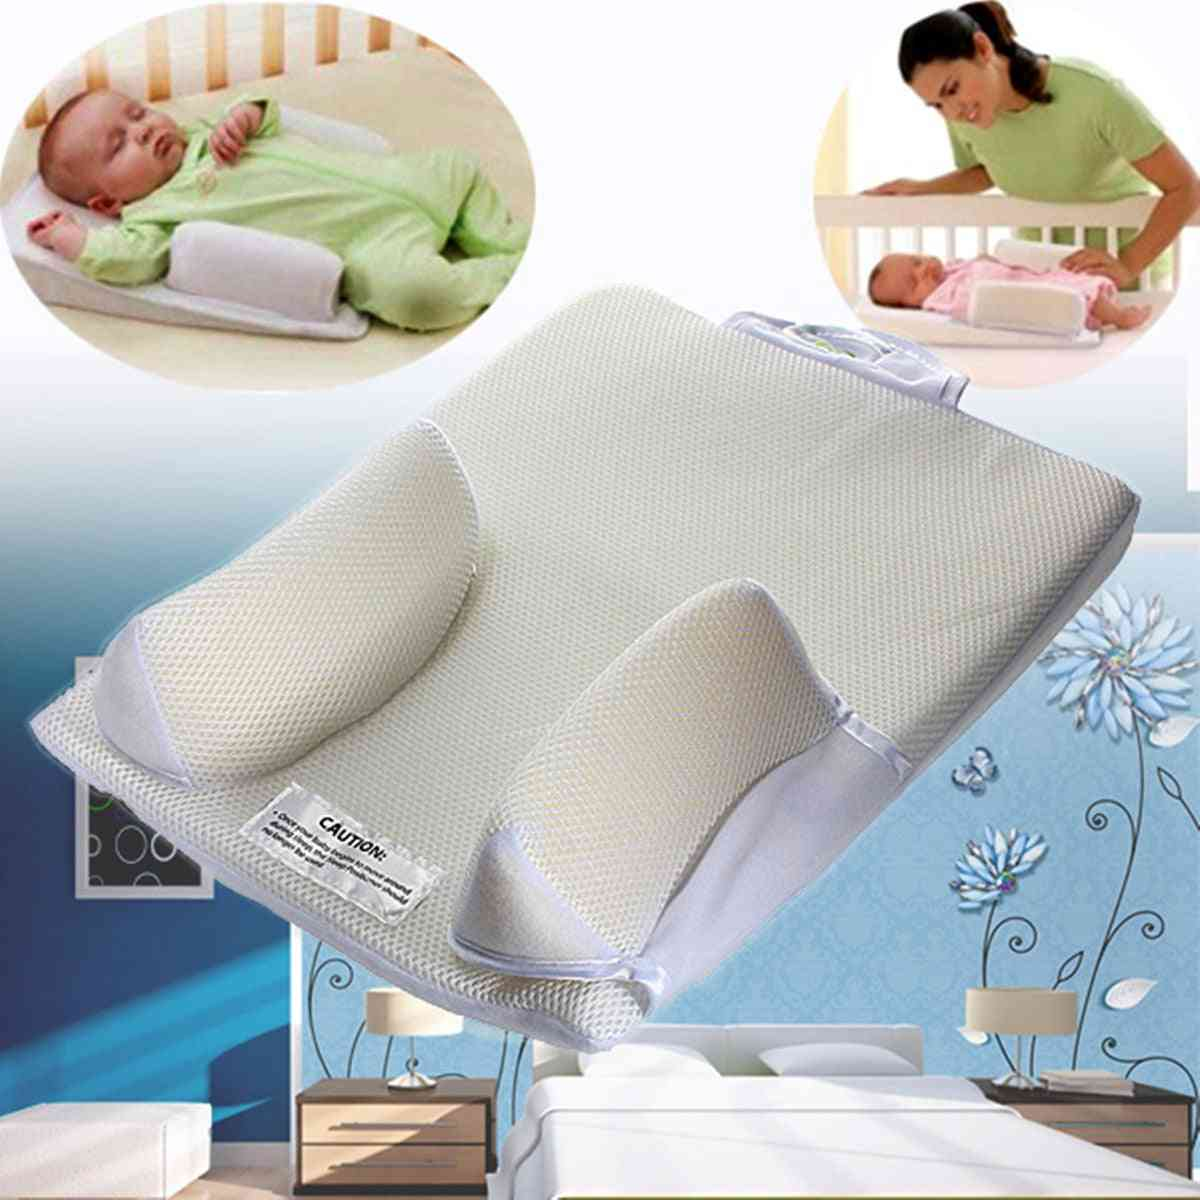 Sleep Positioner Pillow For Babies/infants